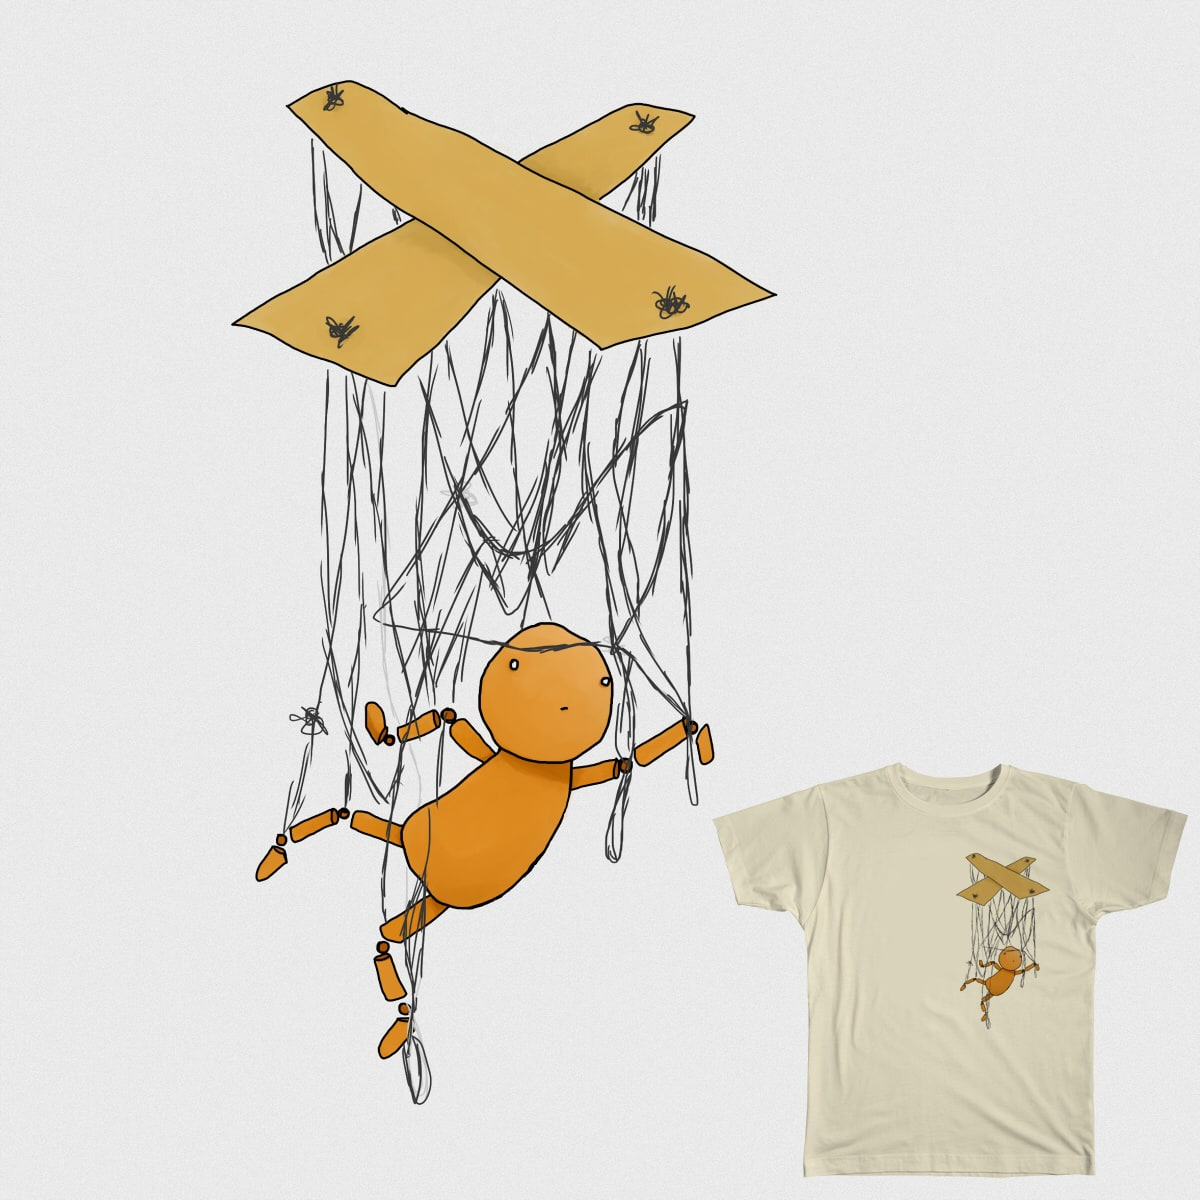 Twisted Marionette by Jubnuggets on Threadless